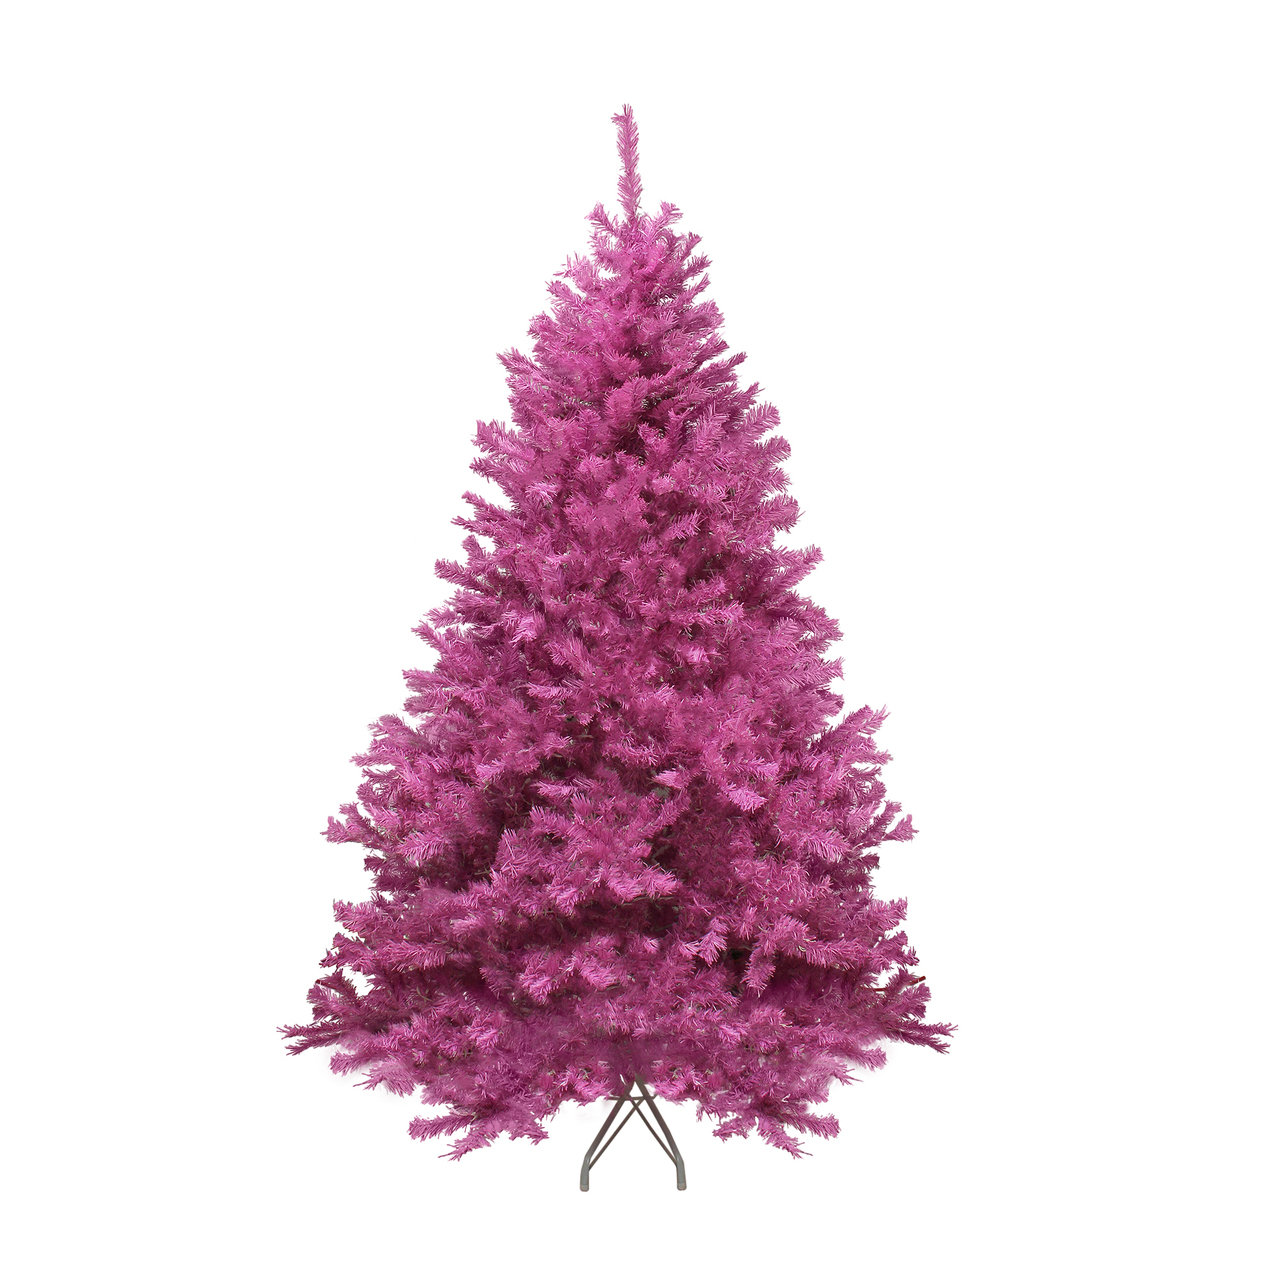 Pink Artificial Christmas Trees: 7.5' Orchid Pink Cedar Pine Artificial Christmas Tree